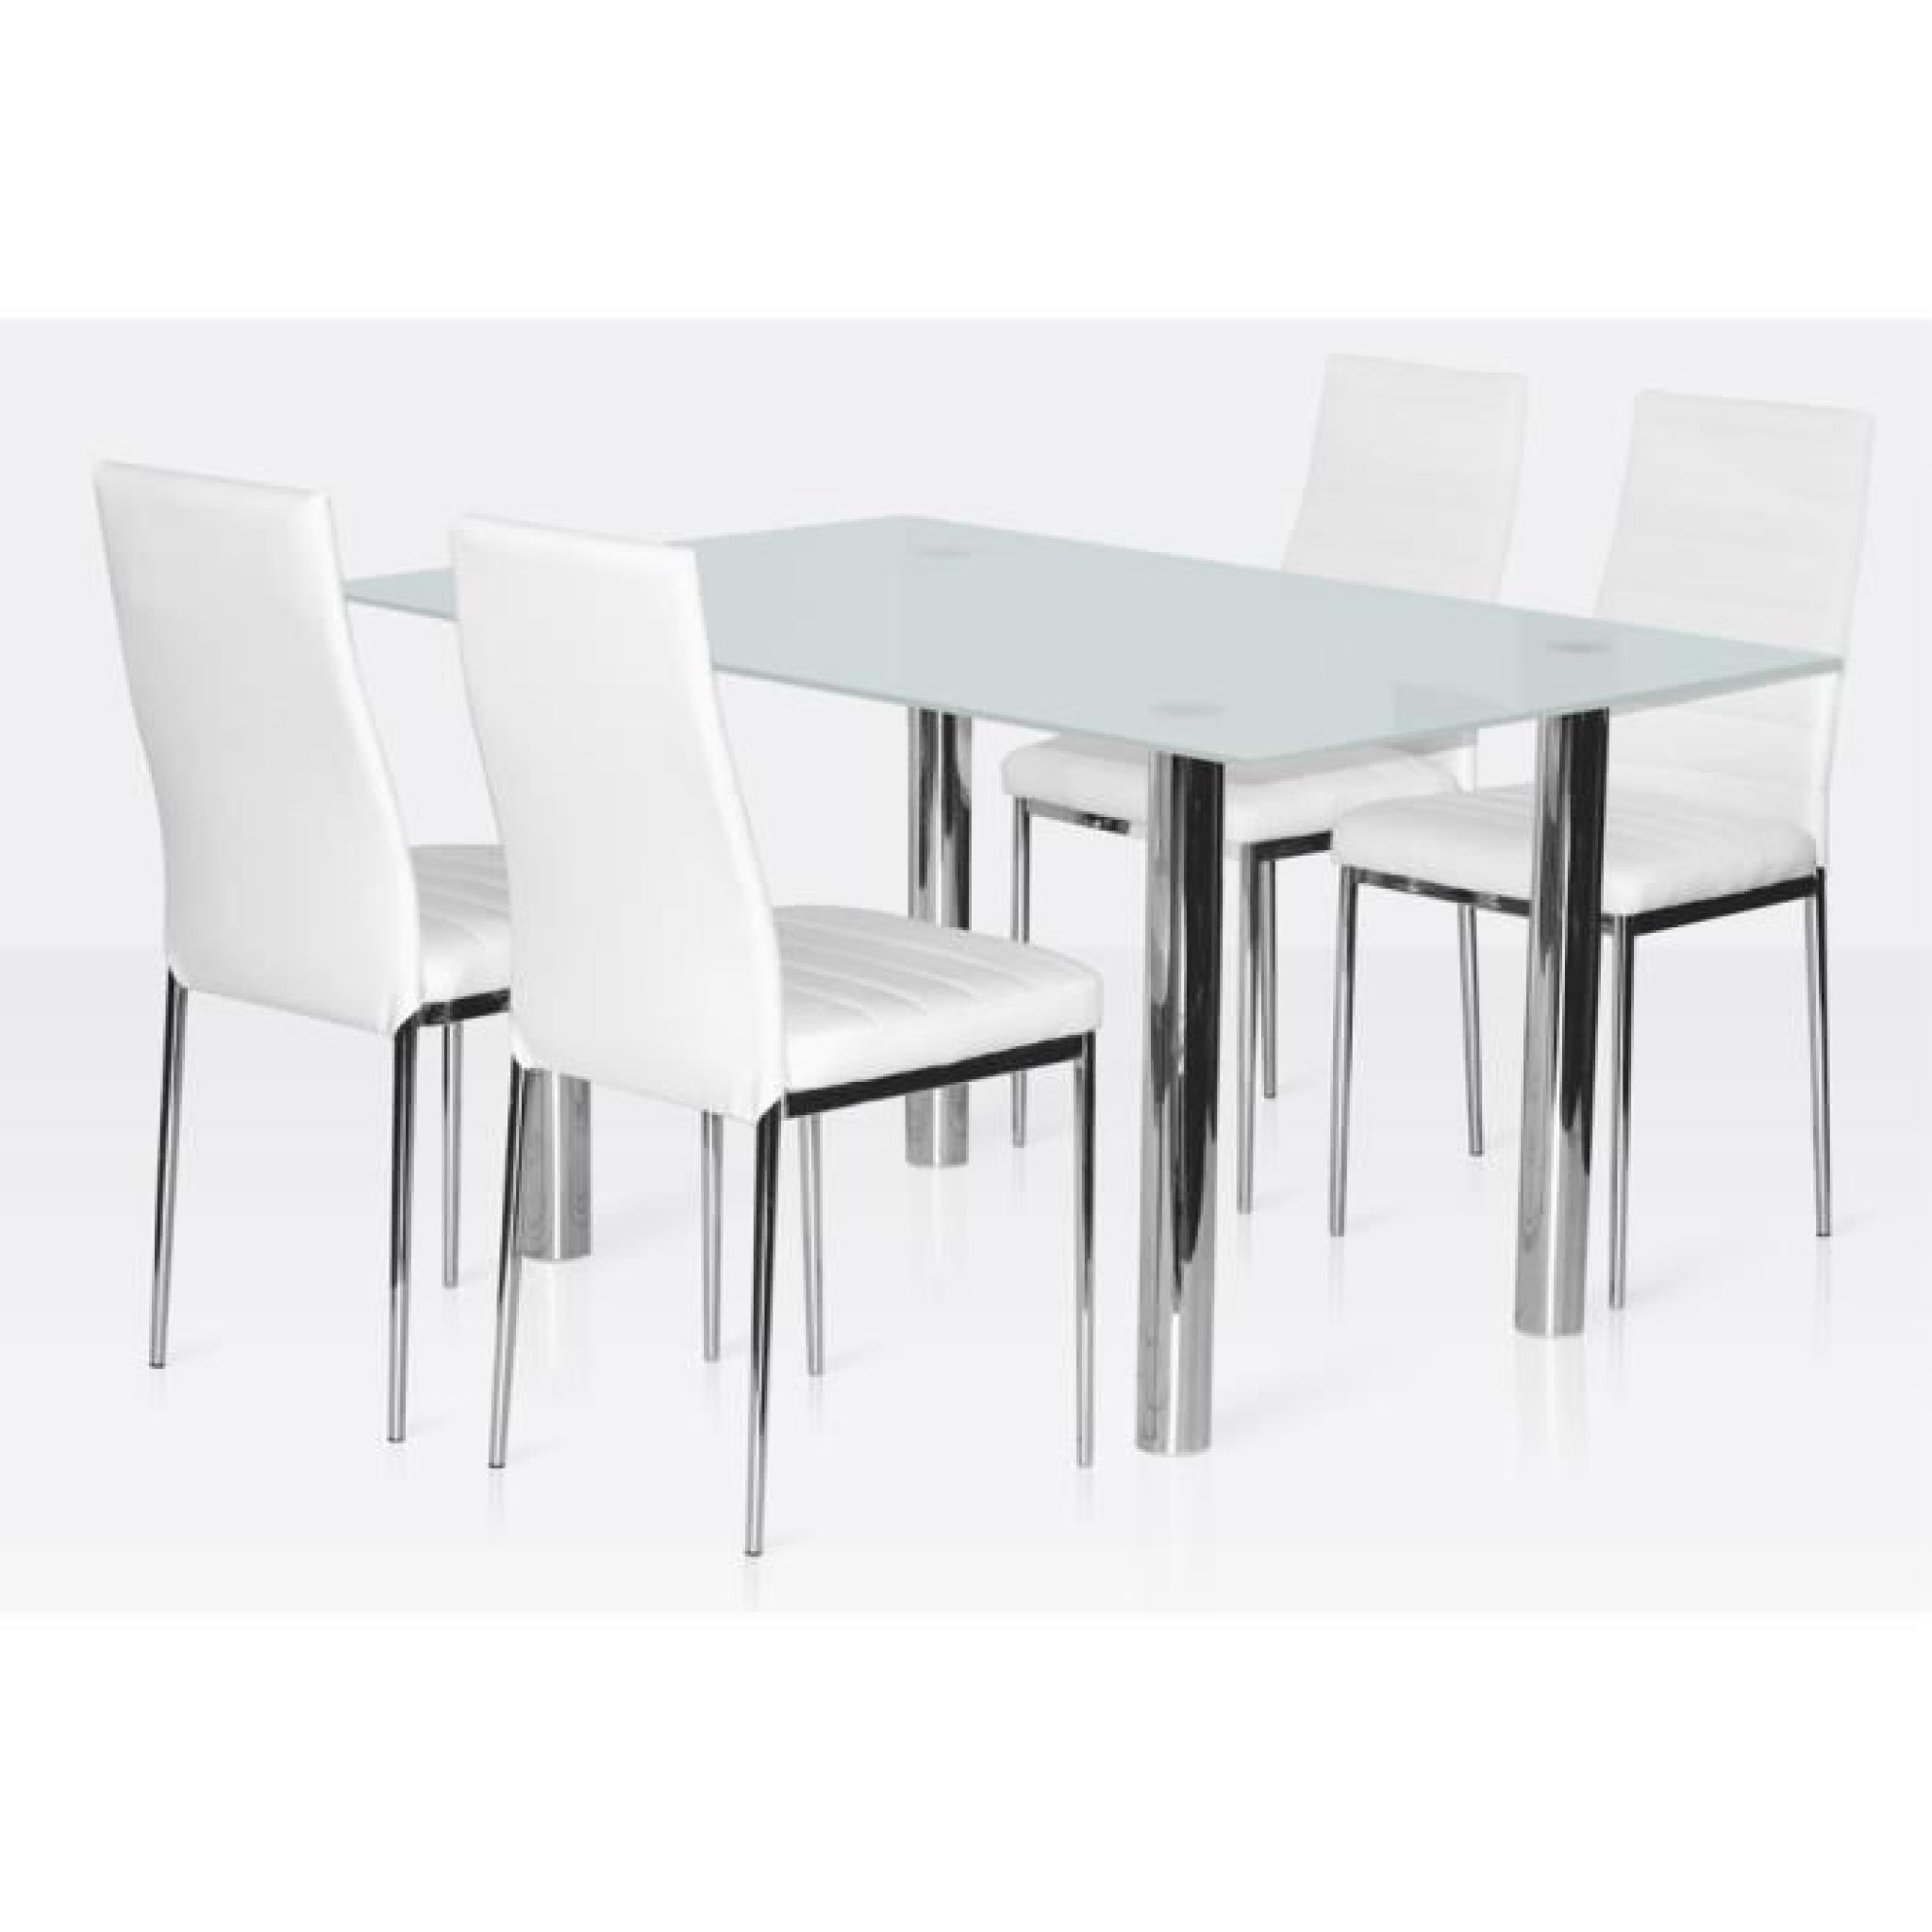 Ensemble salle manger 4 chaises table en verre blanc for Table a manger et chaise